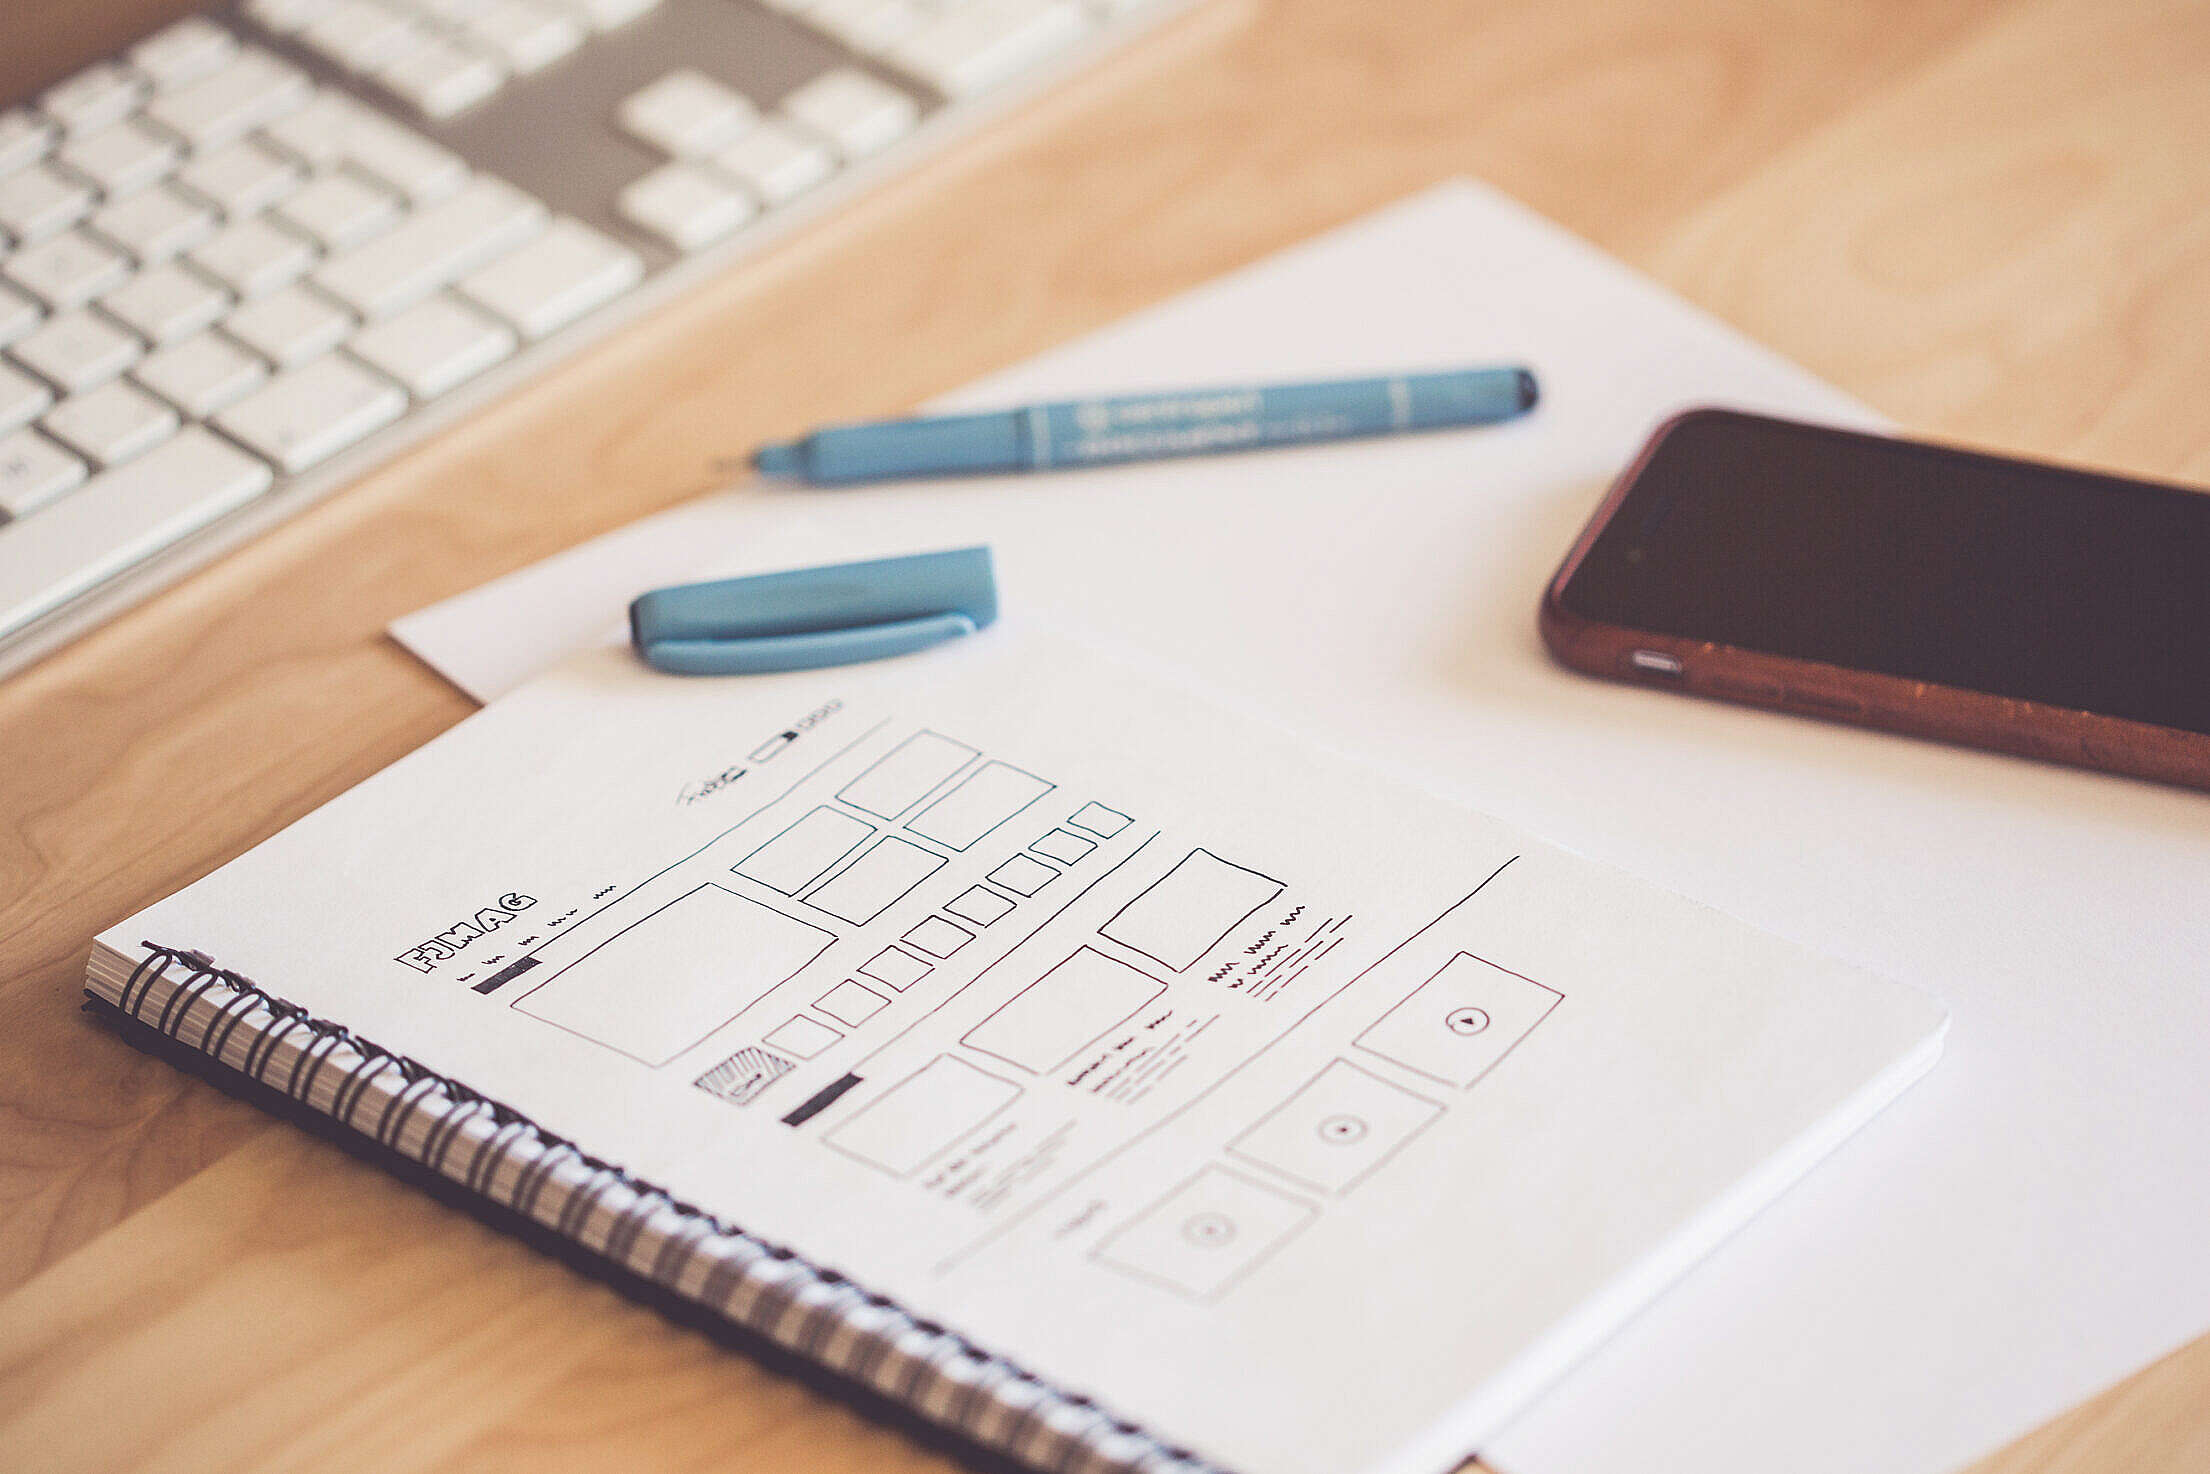 Web Designer Sketching a Wireframe Layout Ideas in a Notebook Free Stock Photo